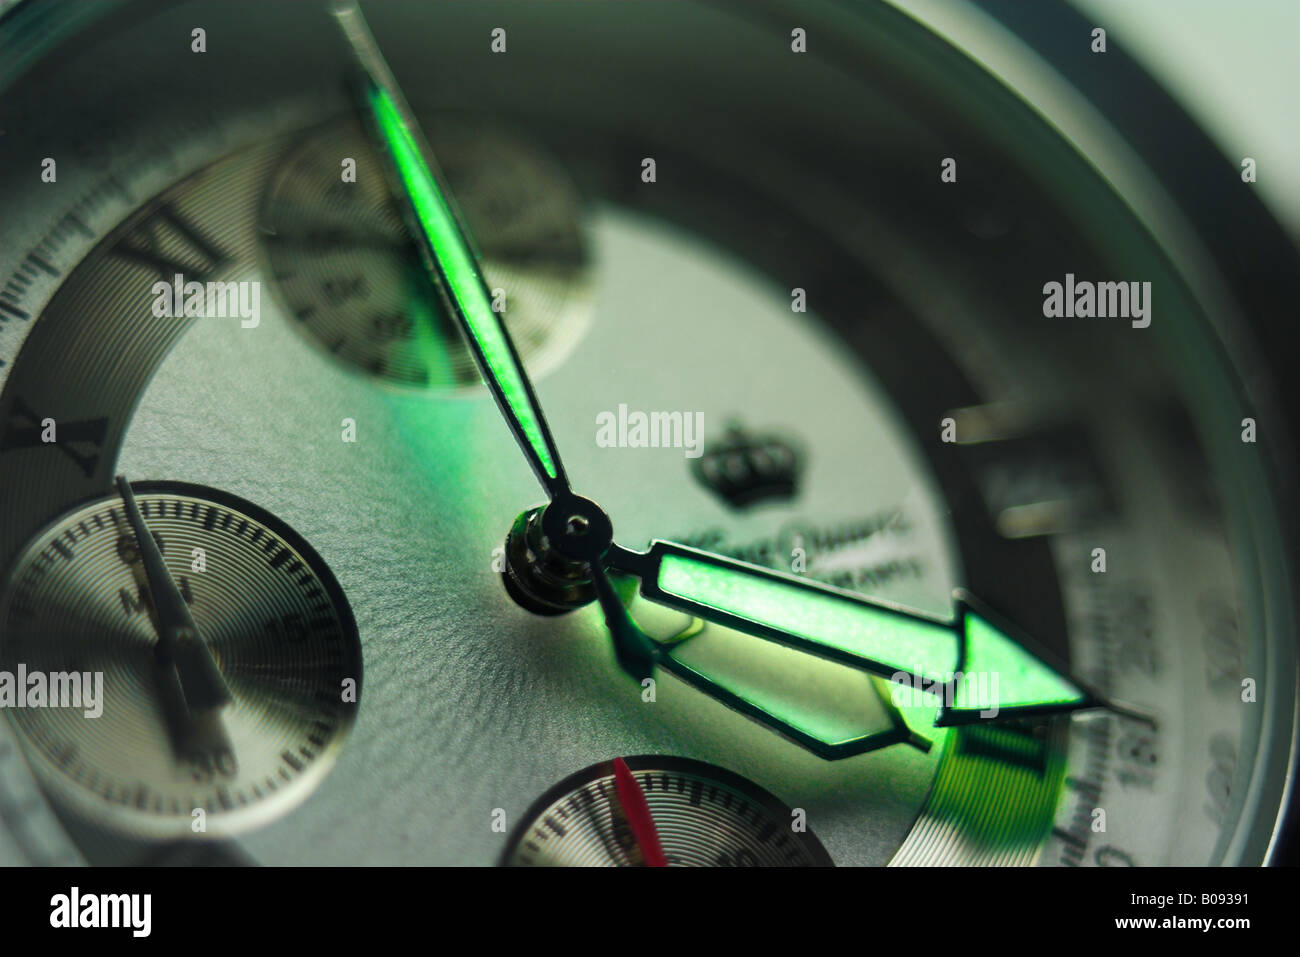 Wristwatch displaying 4:20:00 - Stock Image